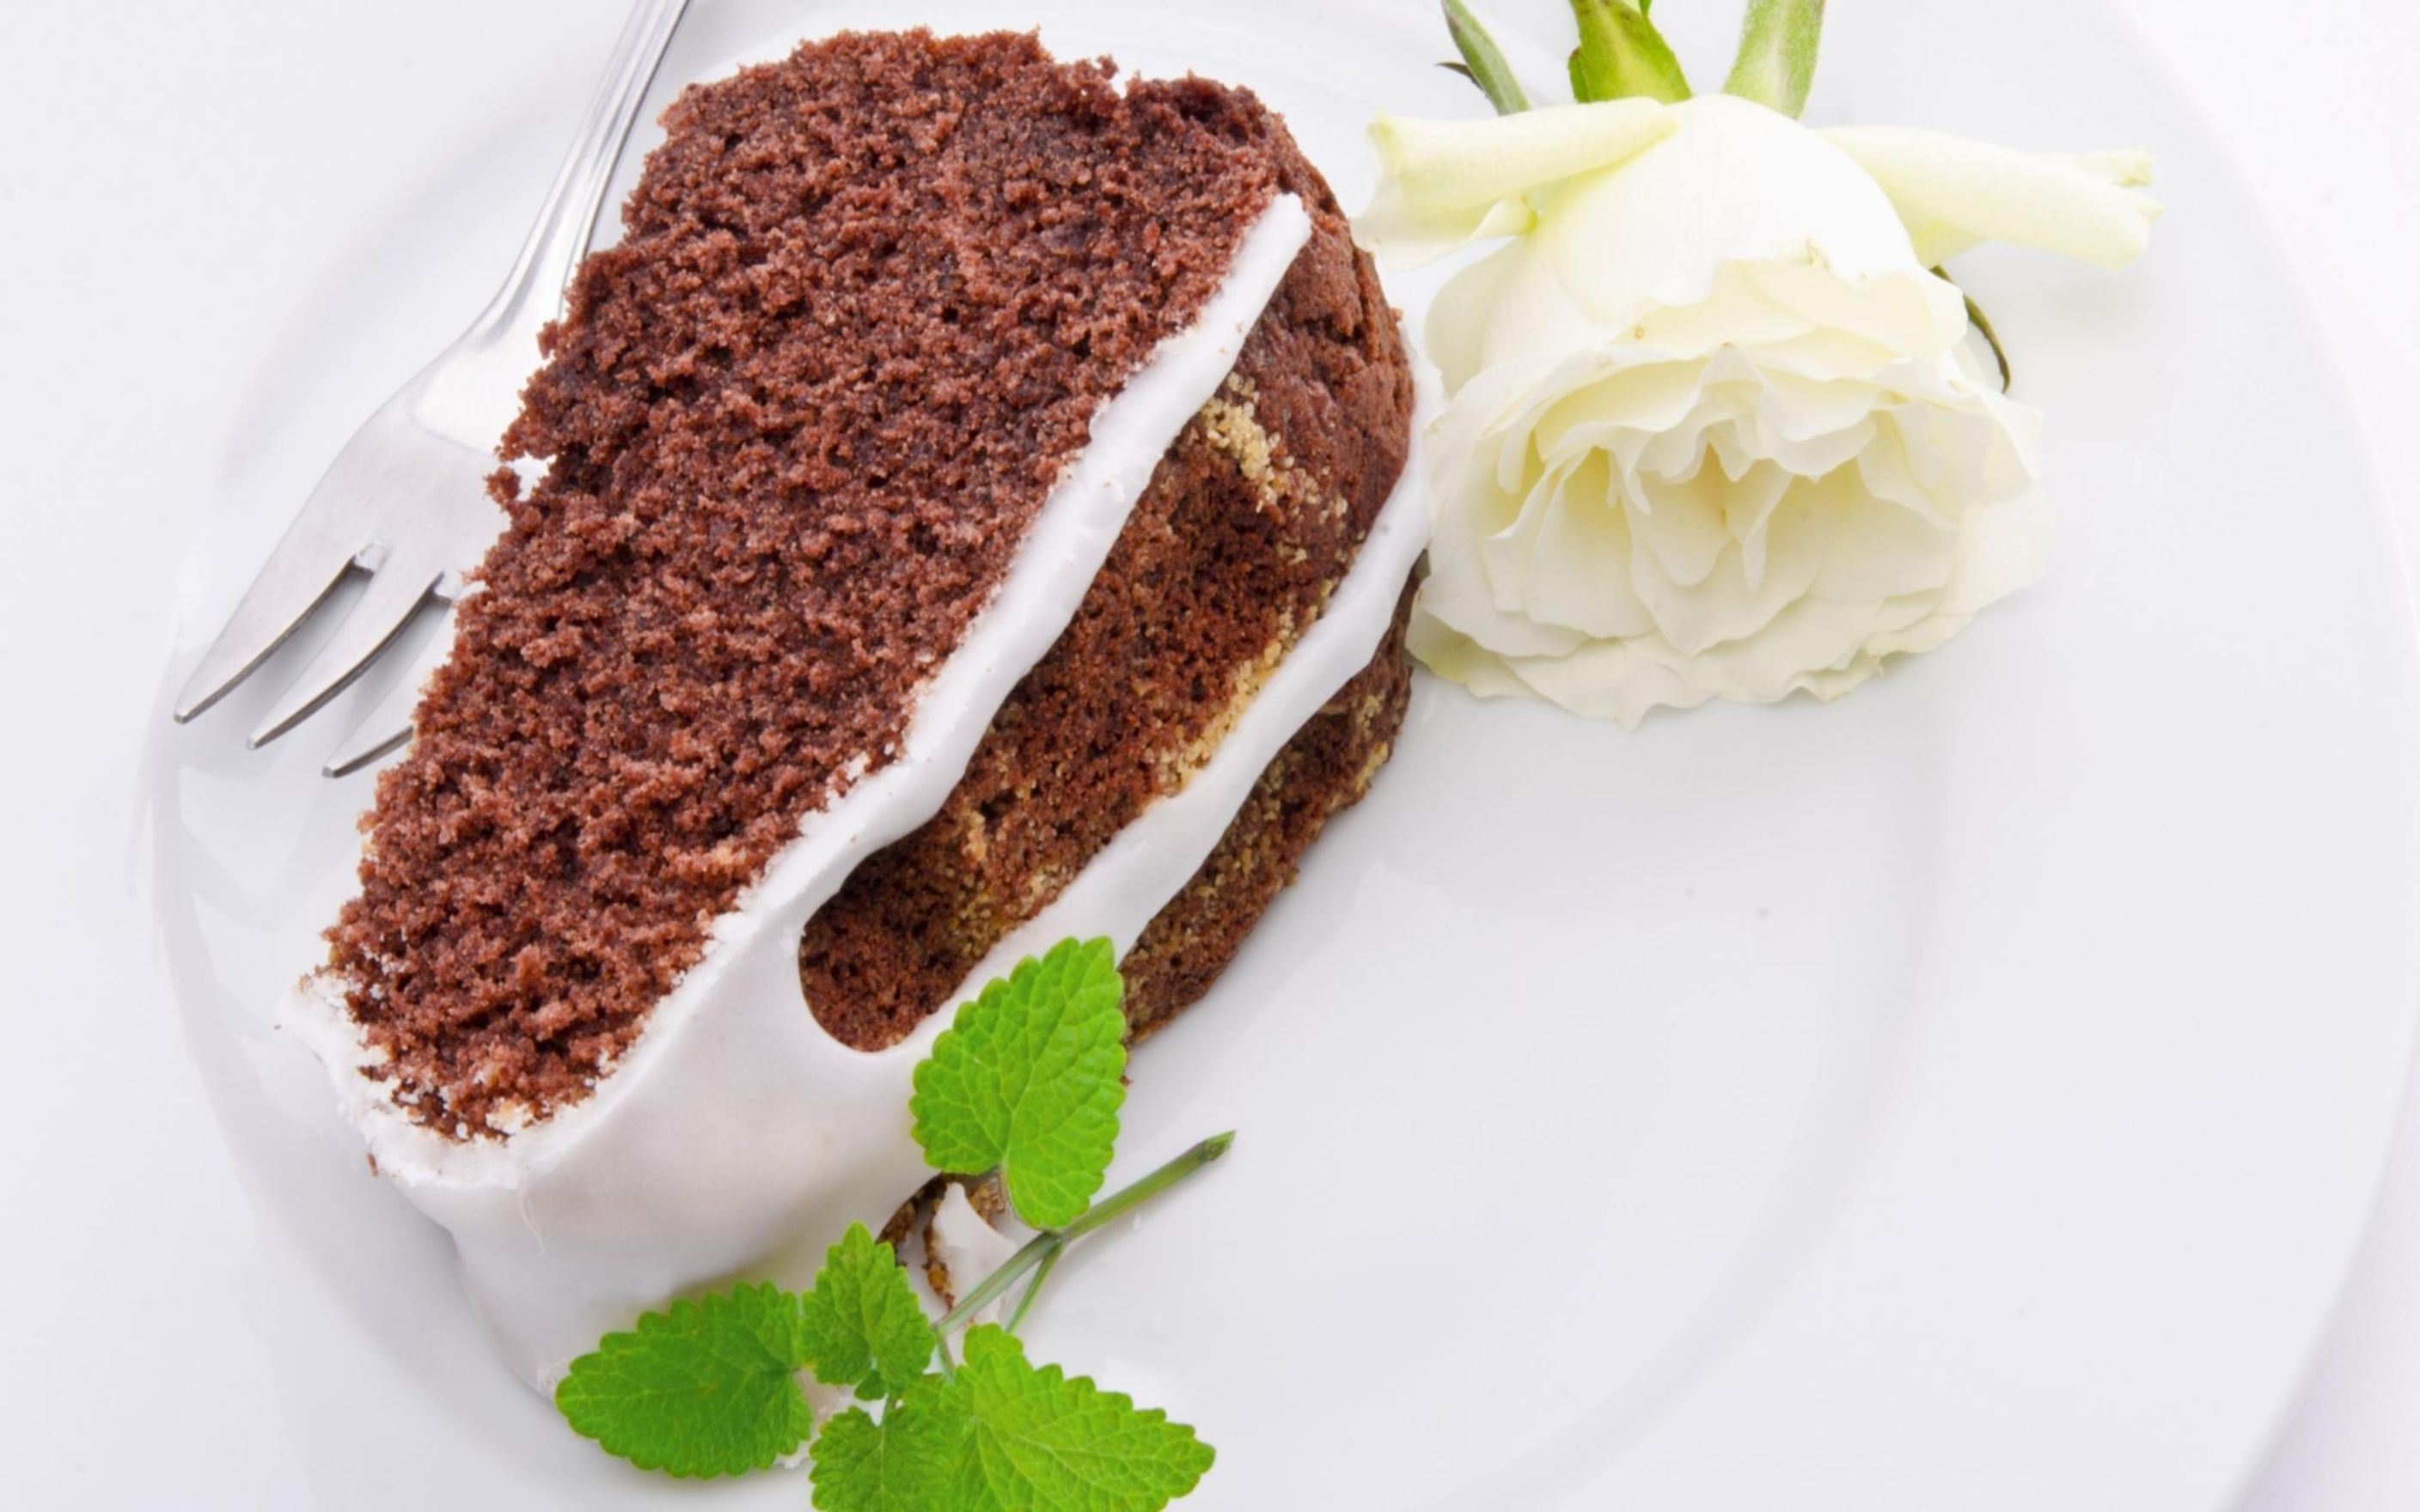 Wallpaper A piece of chocolate cake on a plate with a white rose